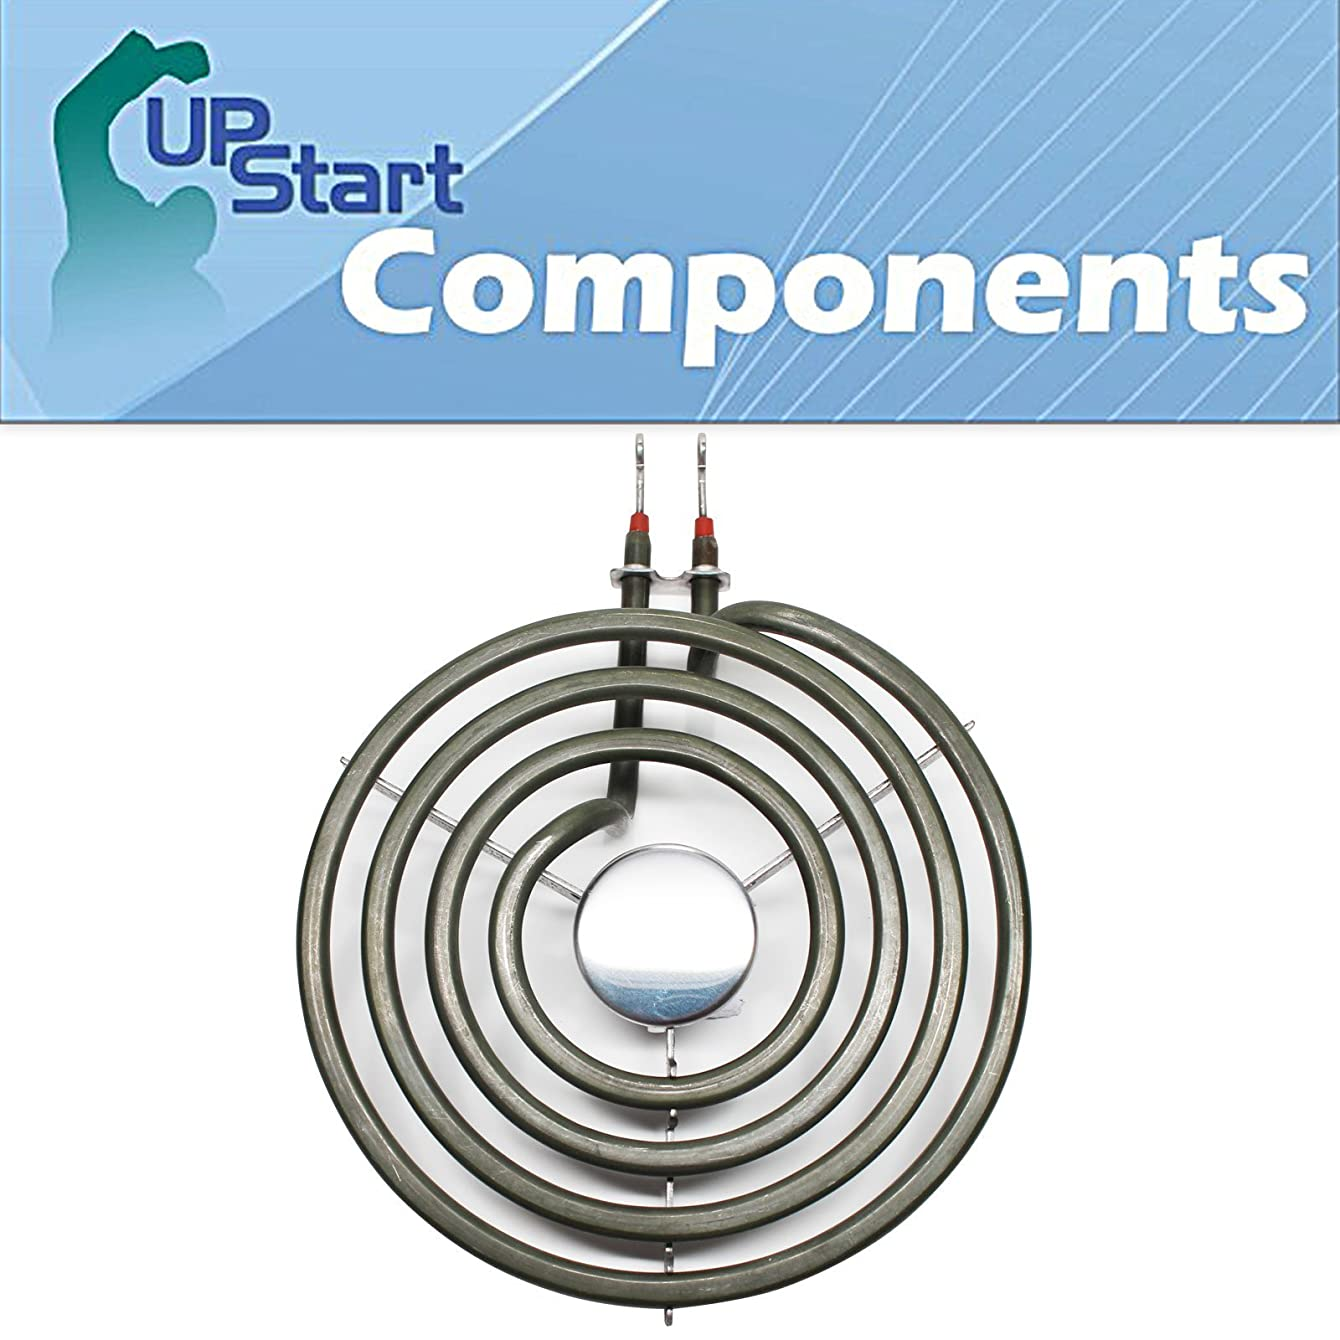 Replacement Whirlpool RS6755XYN6 6 inch 4 Turns Surface Burner Element - Compatible Whirlpool 660532 Heating Element for Range, Stove & Cooktop